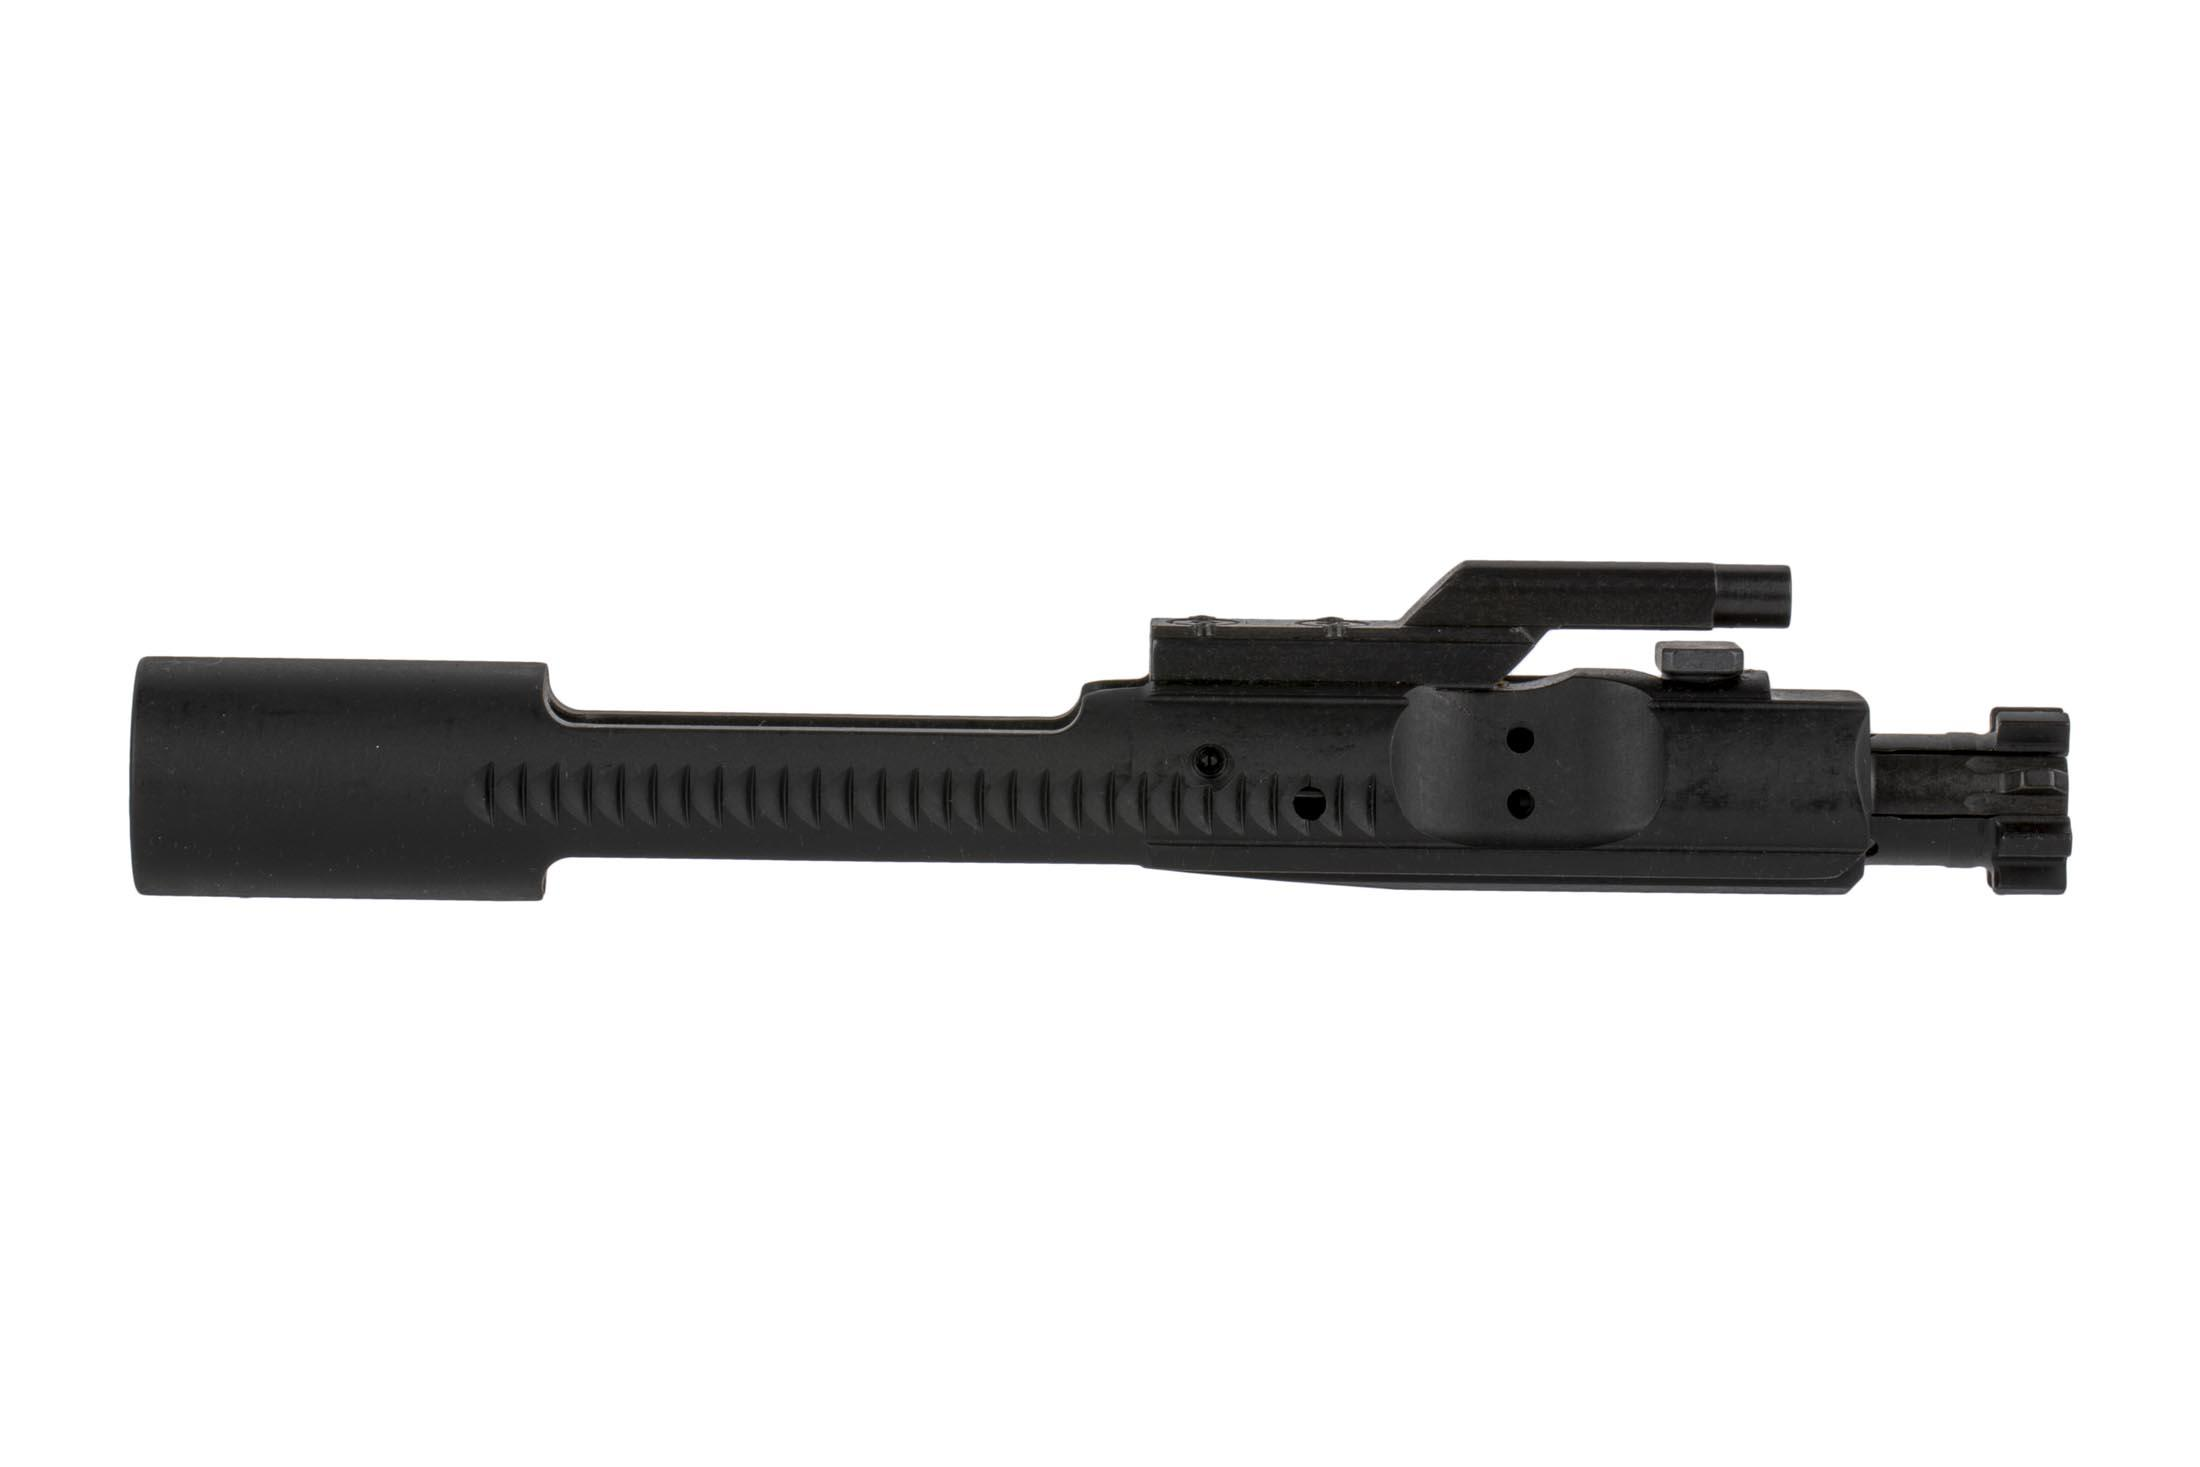 The LMT bolt carrier group for AR15 features a Manganese Phosphate finish